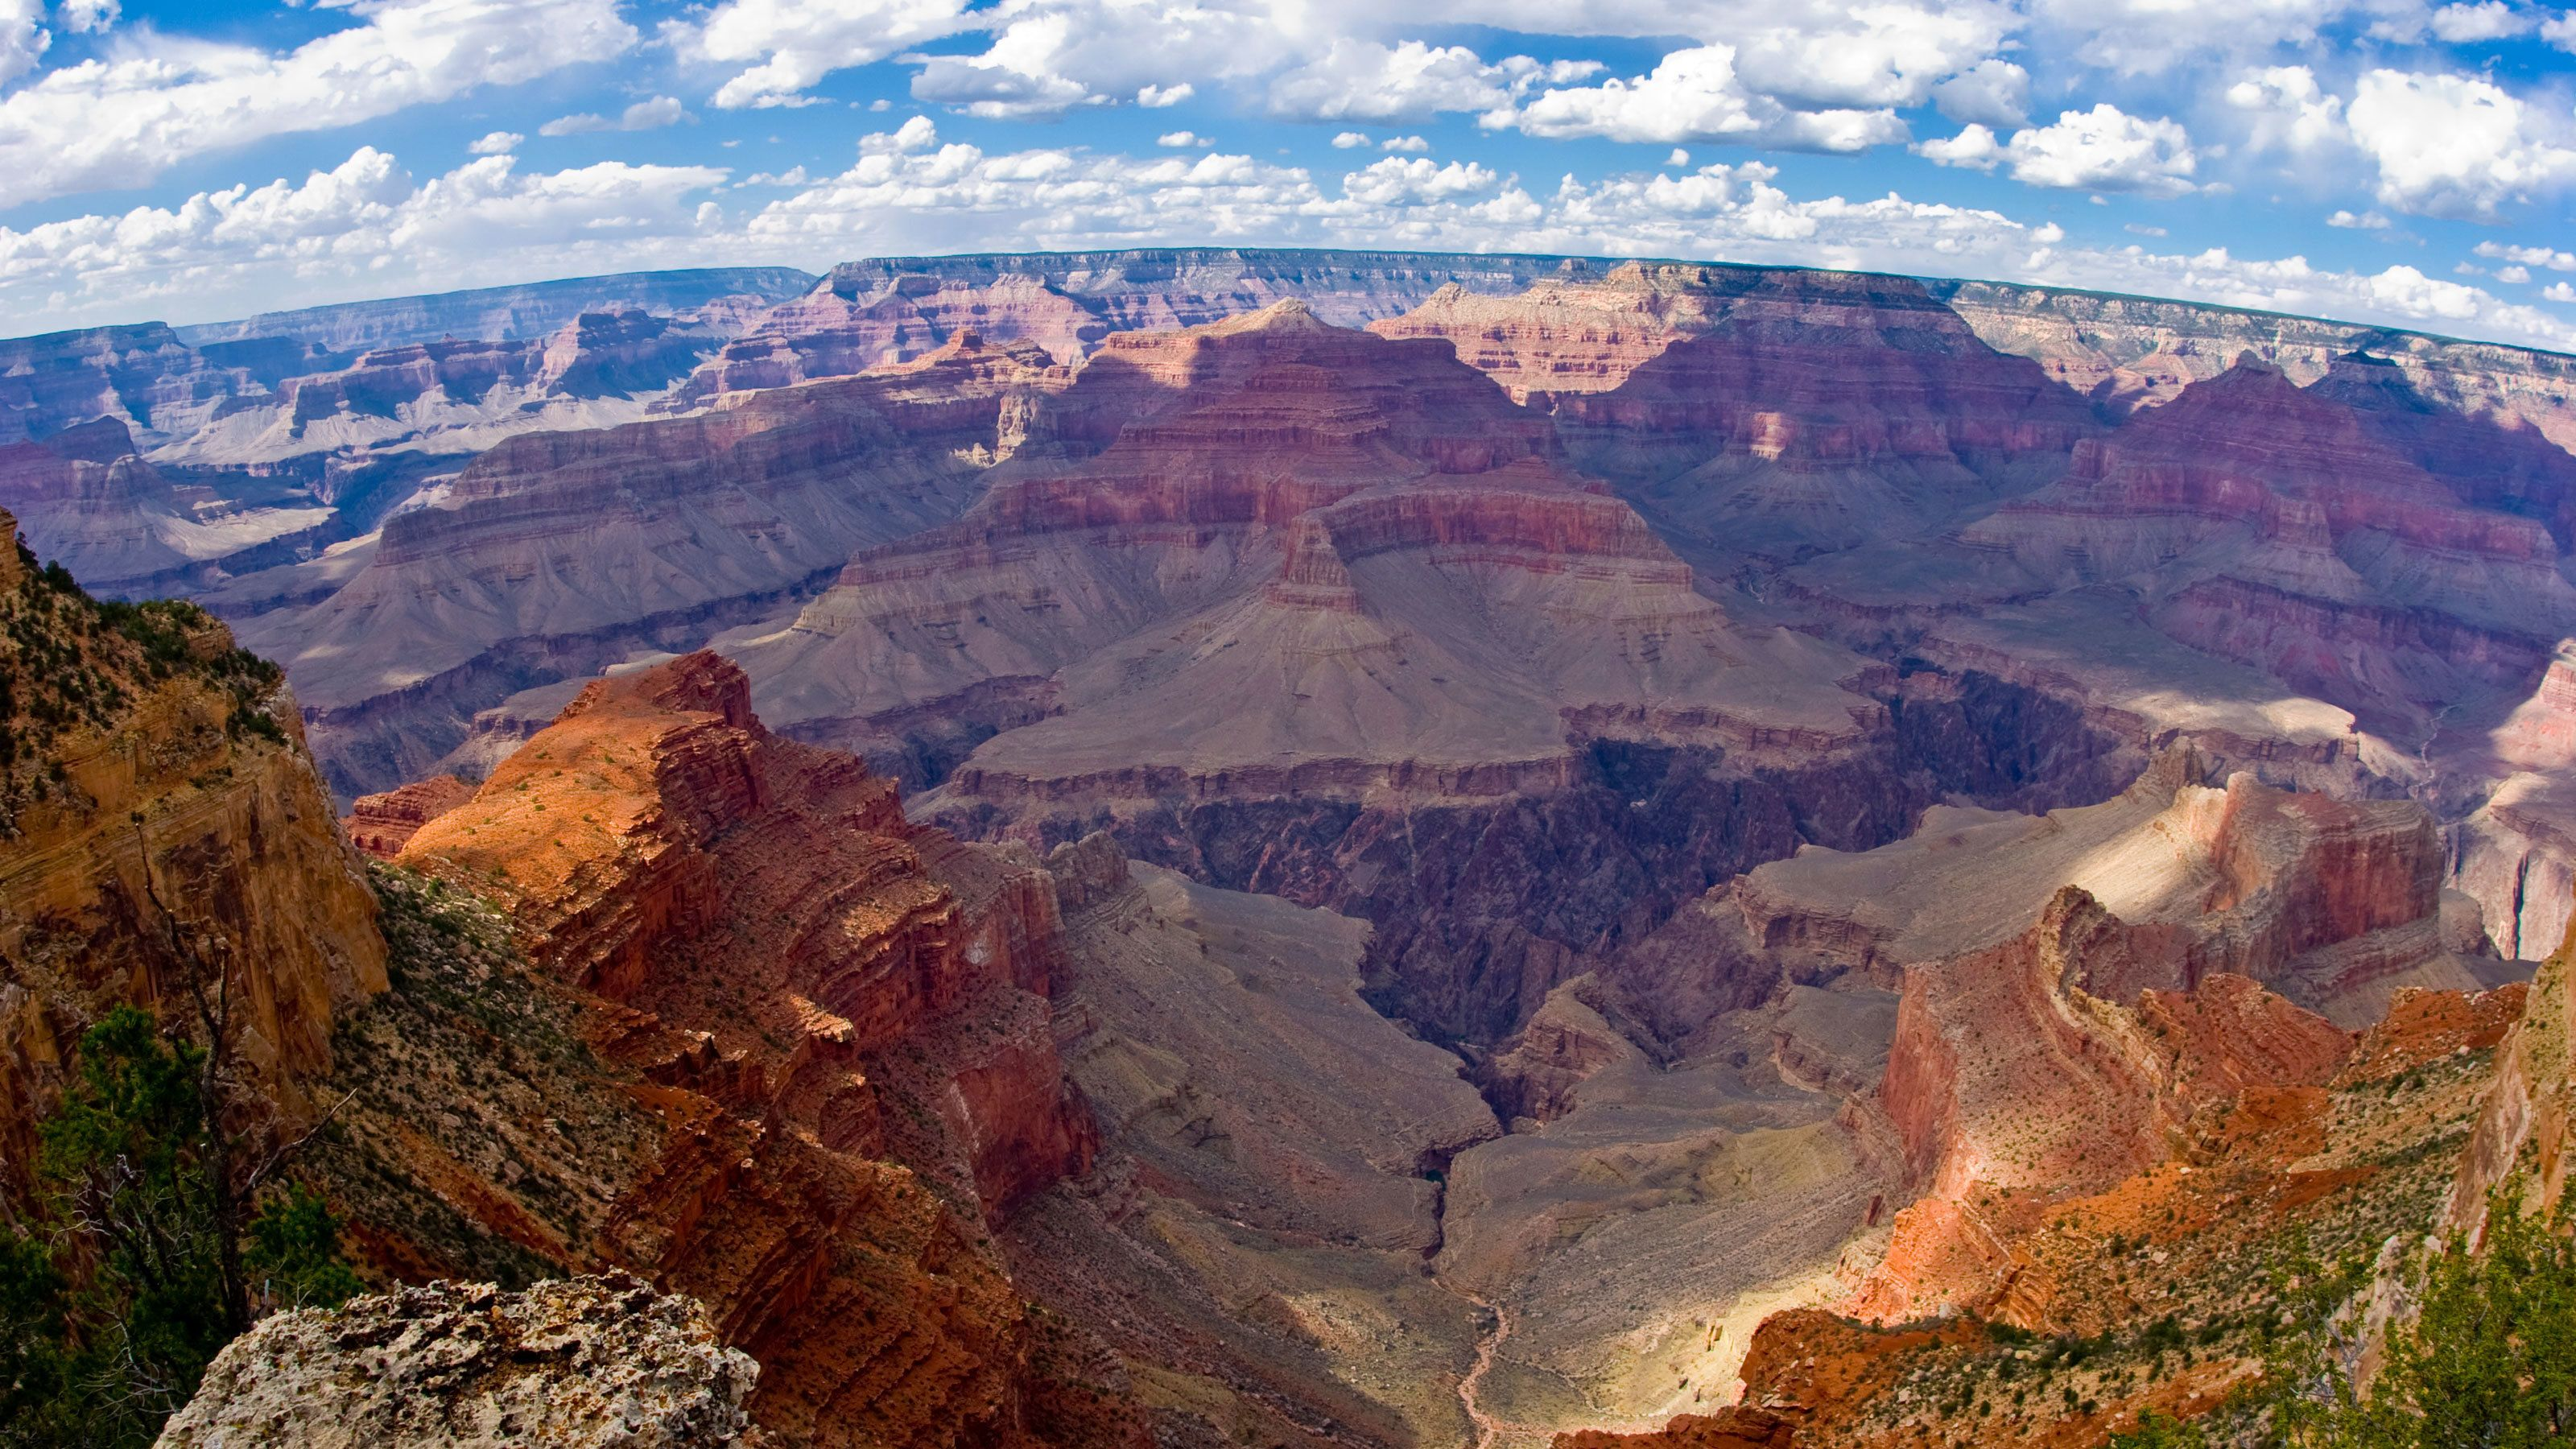 Ariel view of the Grand Canyon in Arizona